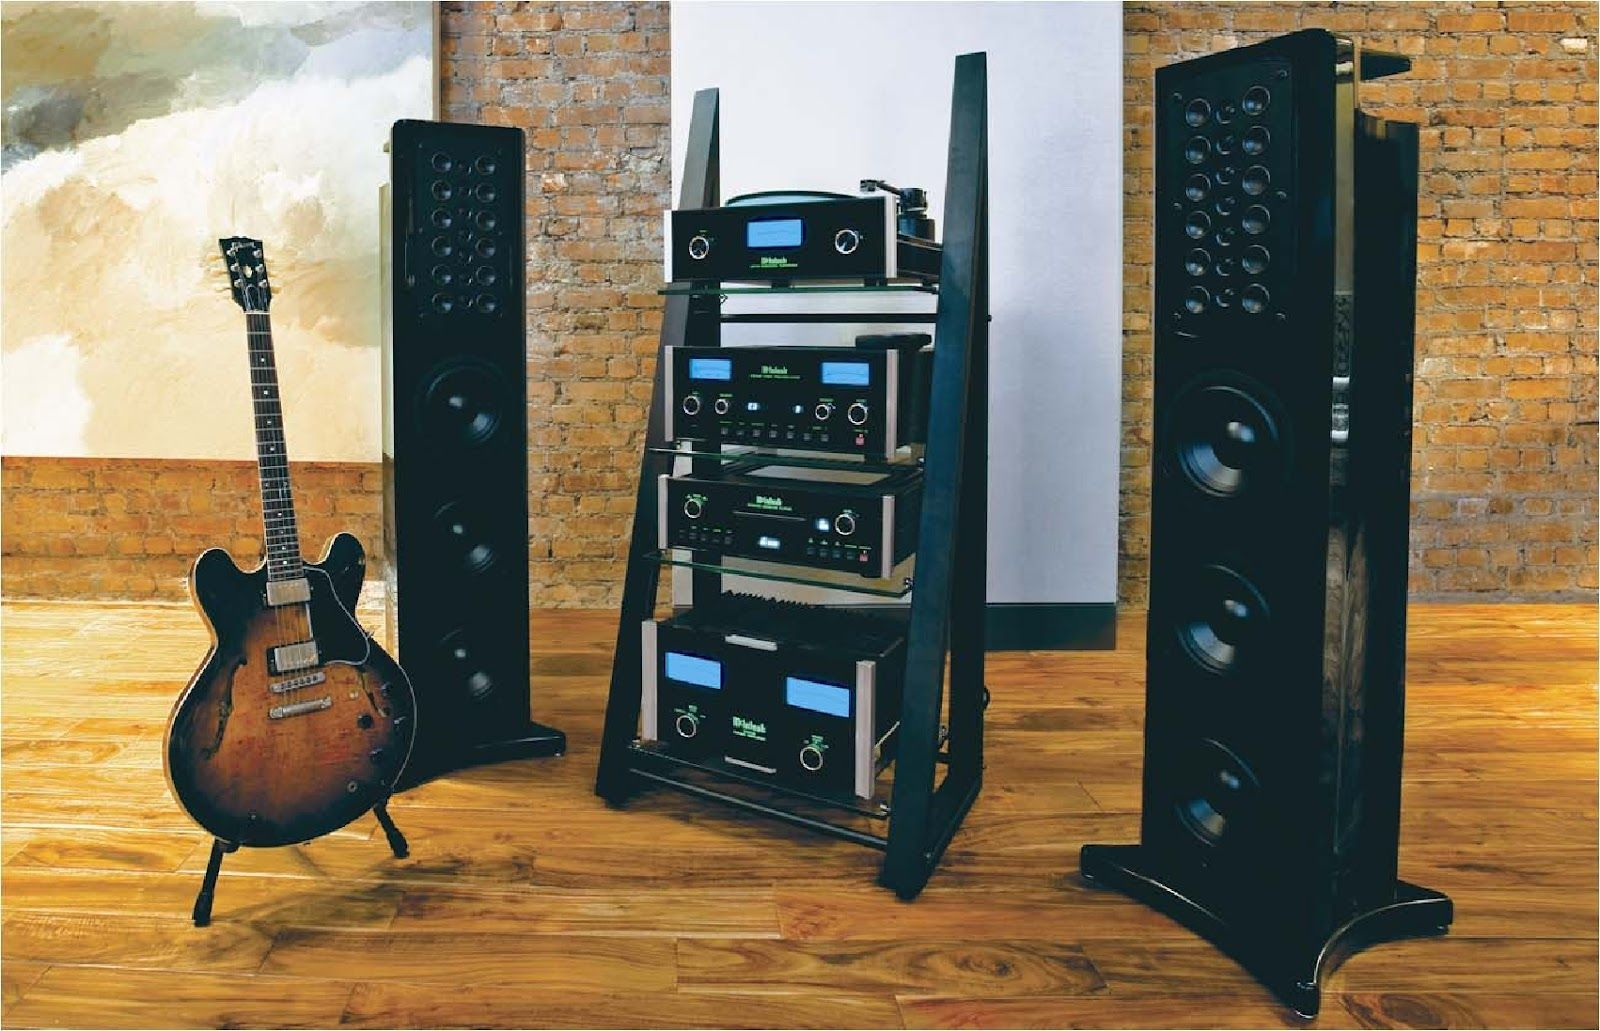 McIntosh products available at Audio Visual Solutions Group 9340 W. Sahara Avenue, Suite 100, Las Vegas, NV 89117. The only McIntosh/Sonus Faber Platinum Dealer in Las Vegas, Nevada. Call for pricing (702) 875-5561